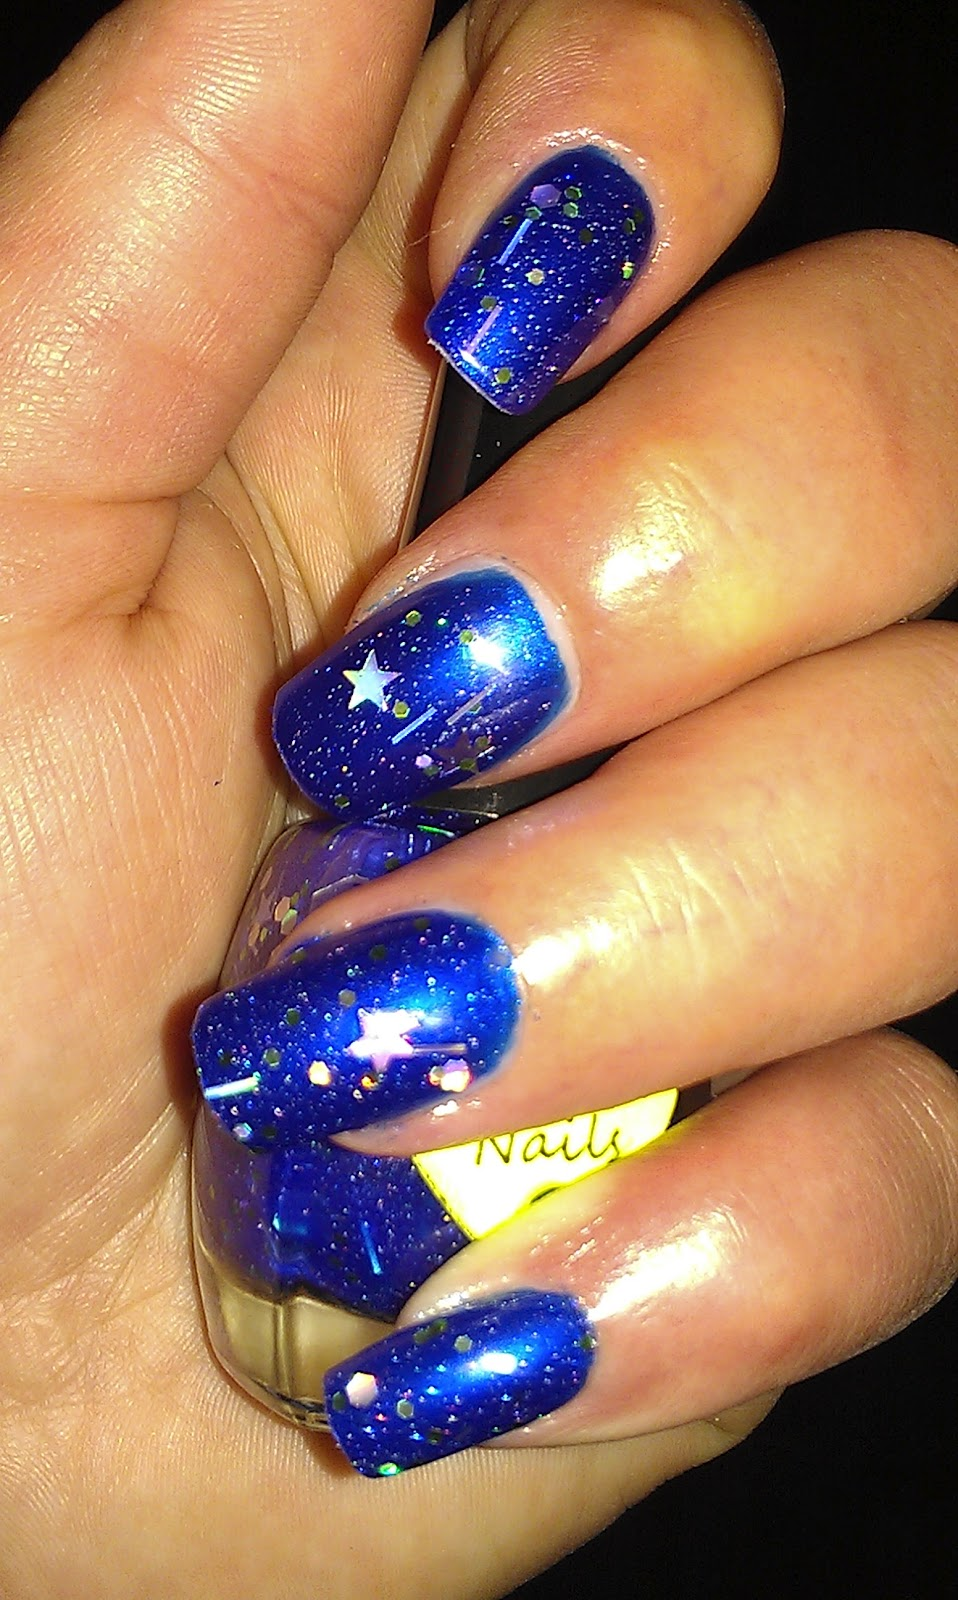 Pictures Of Royal Blue And Silver Acrylic Nails Kidskunstfo